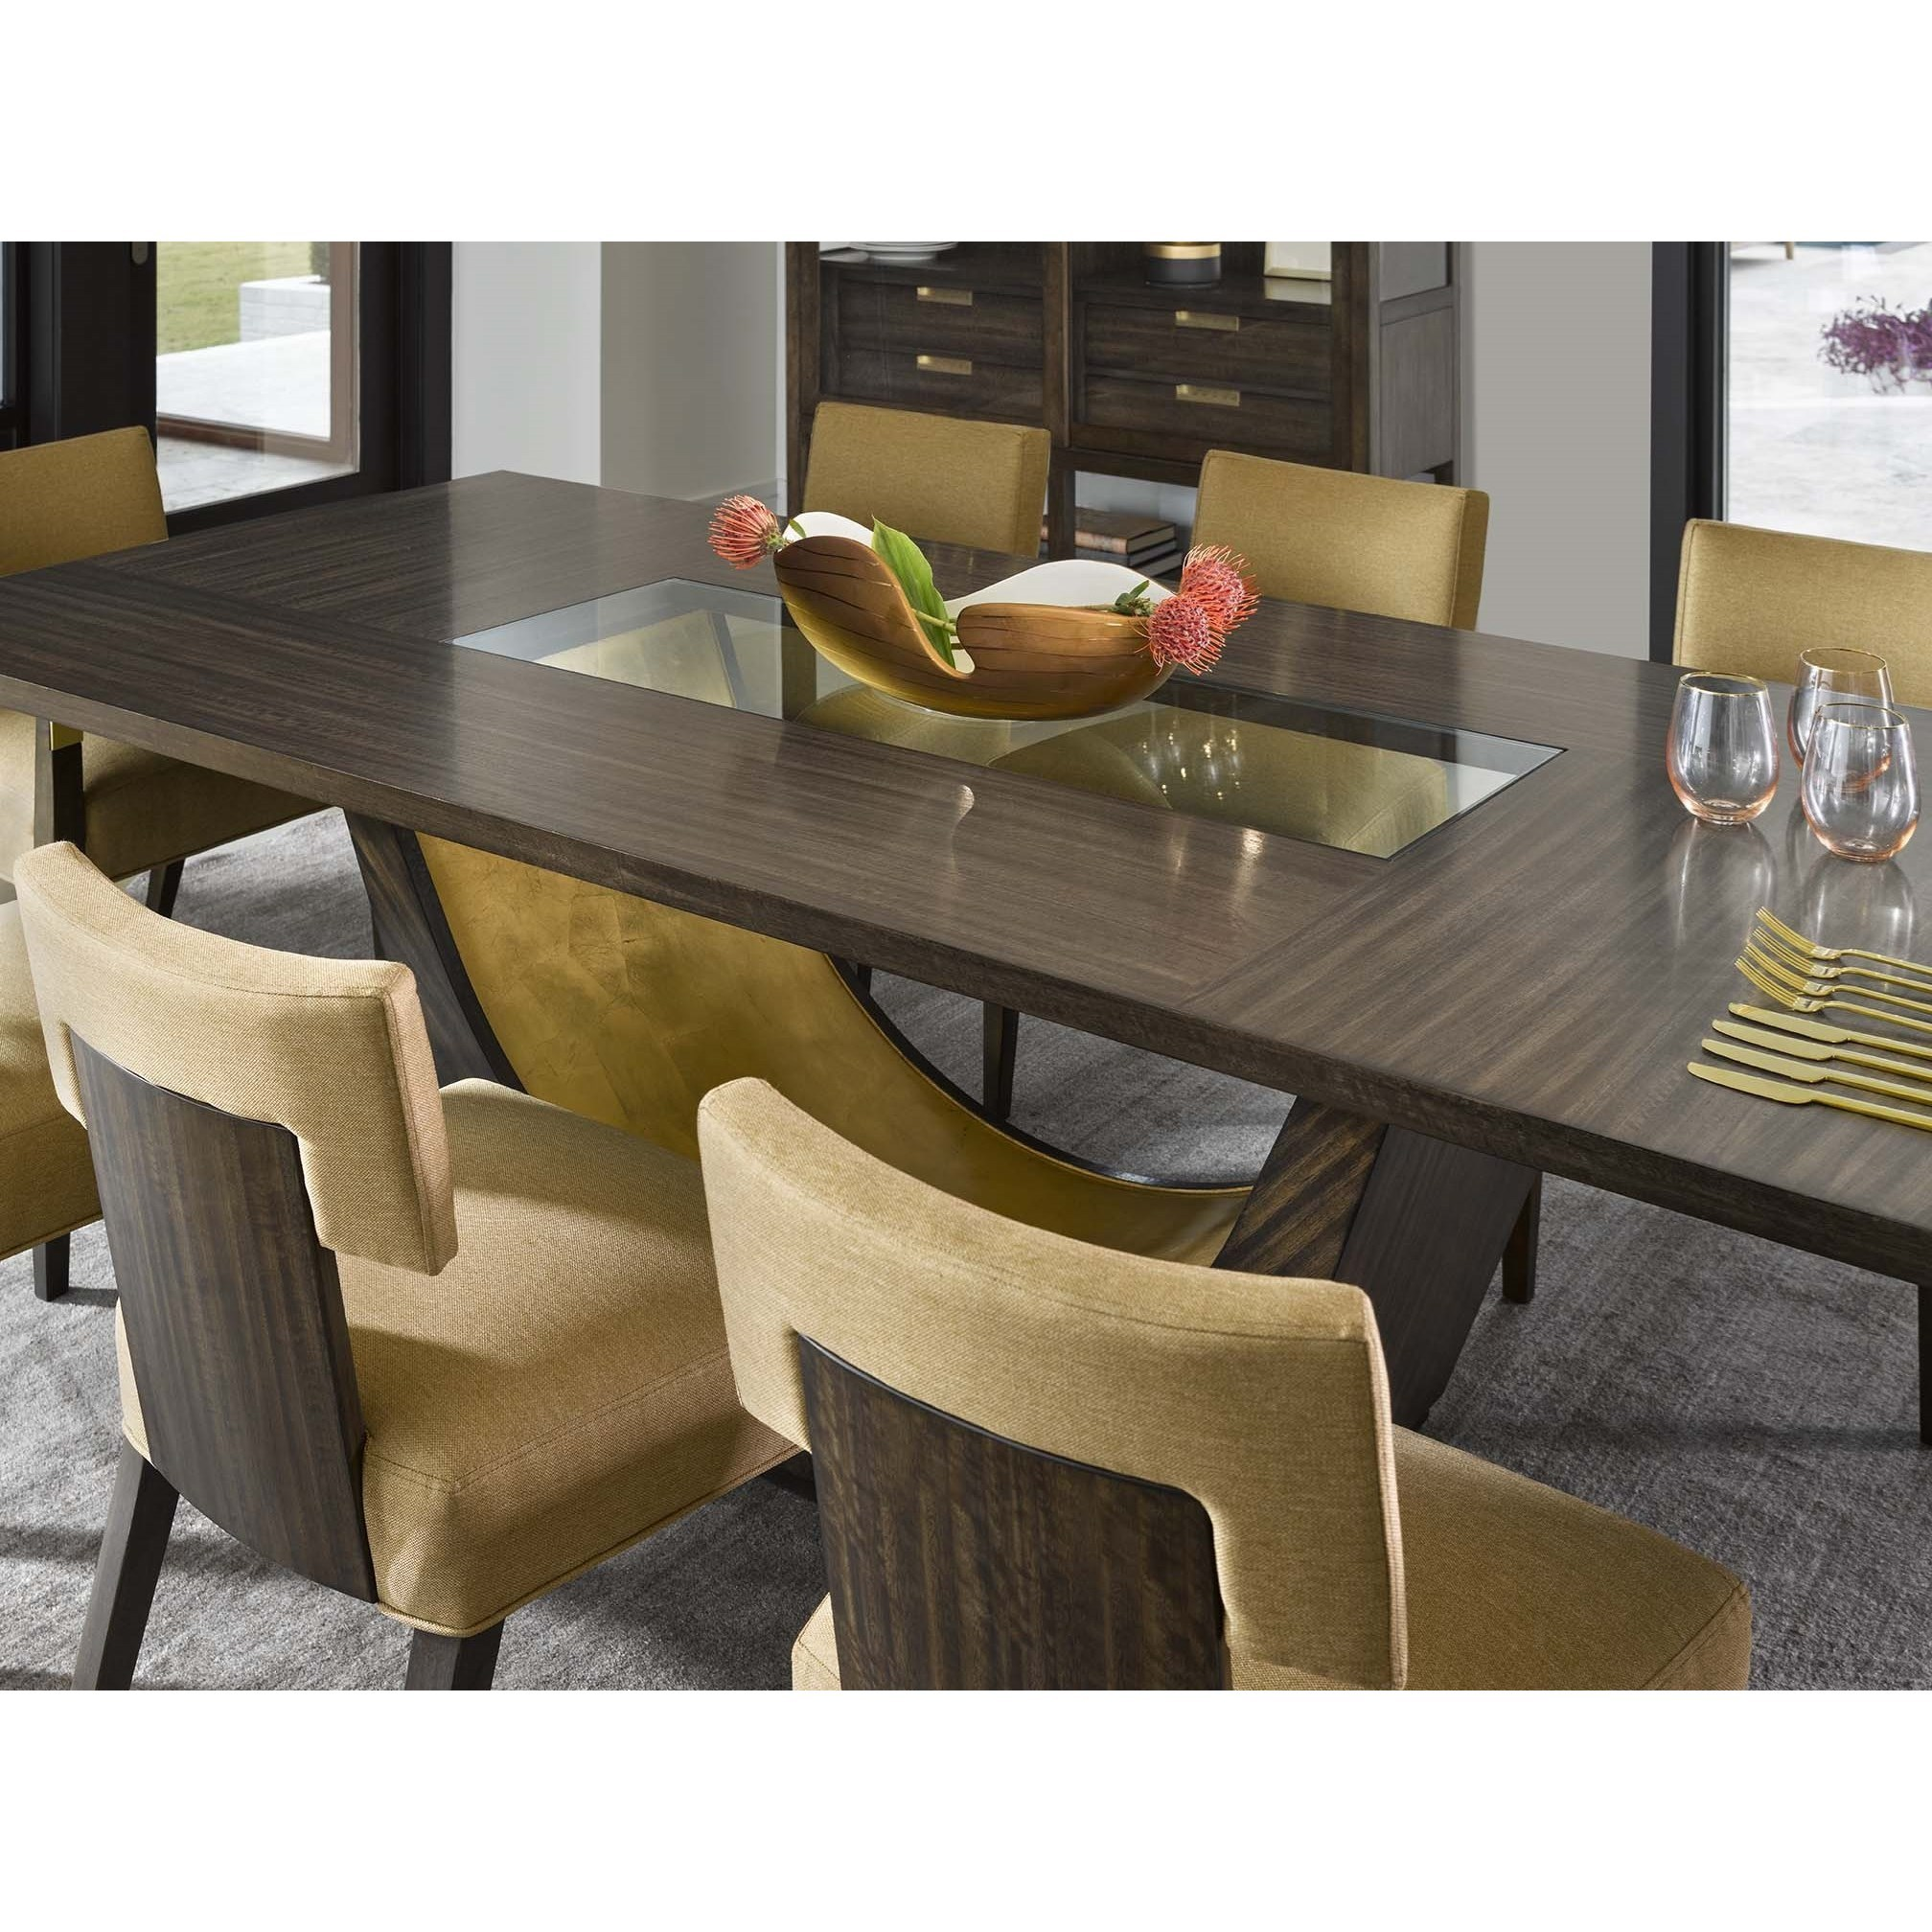 "Fine Furniture Design Runaway Tegola 84"" Dining Table With"